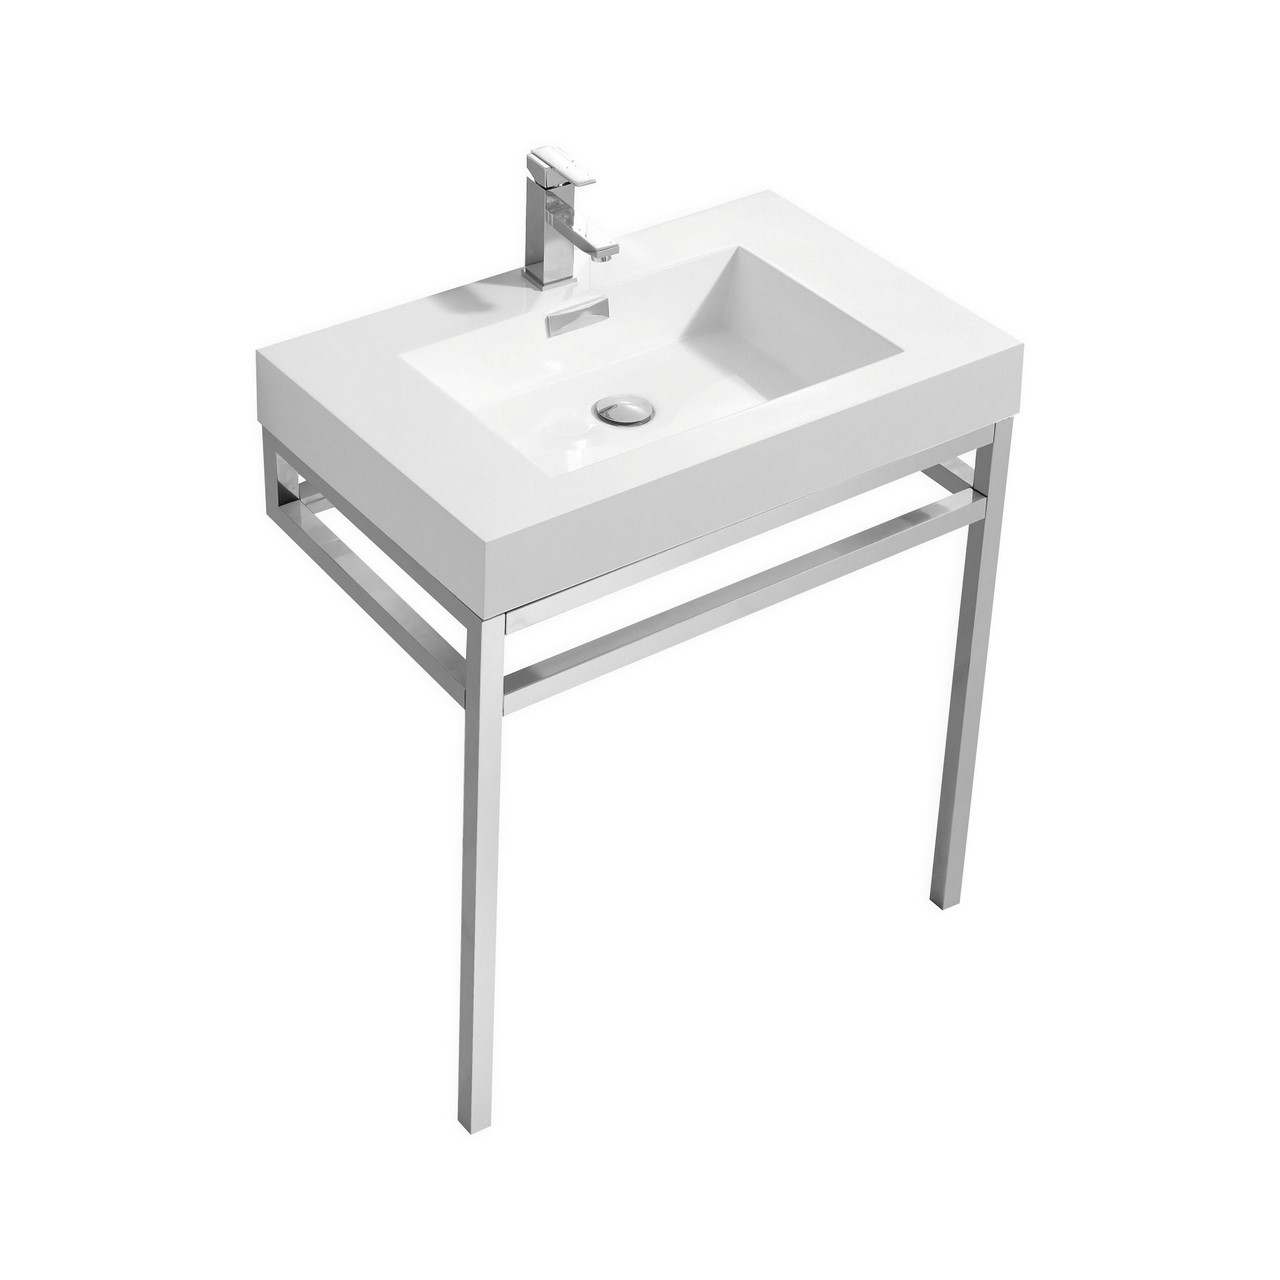 Haus 30 Quot Stainless Steel Console W White Acrylic Sink